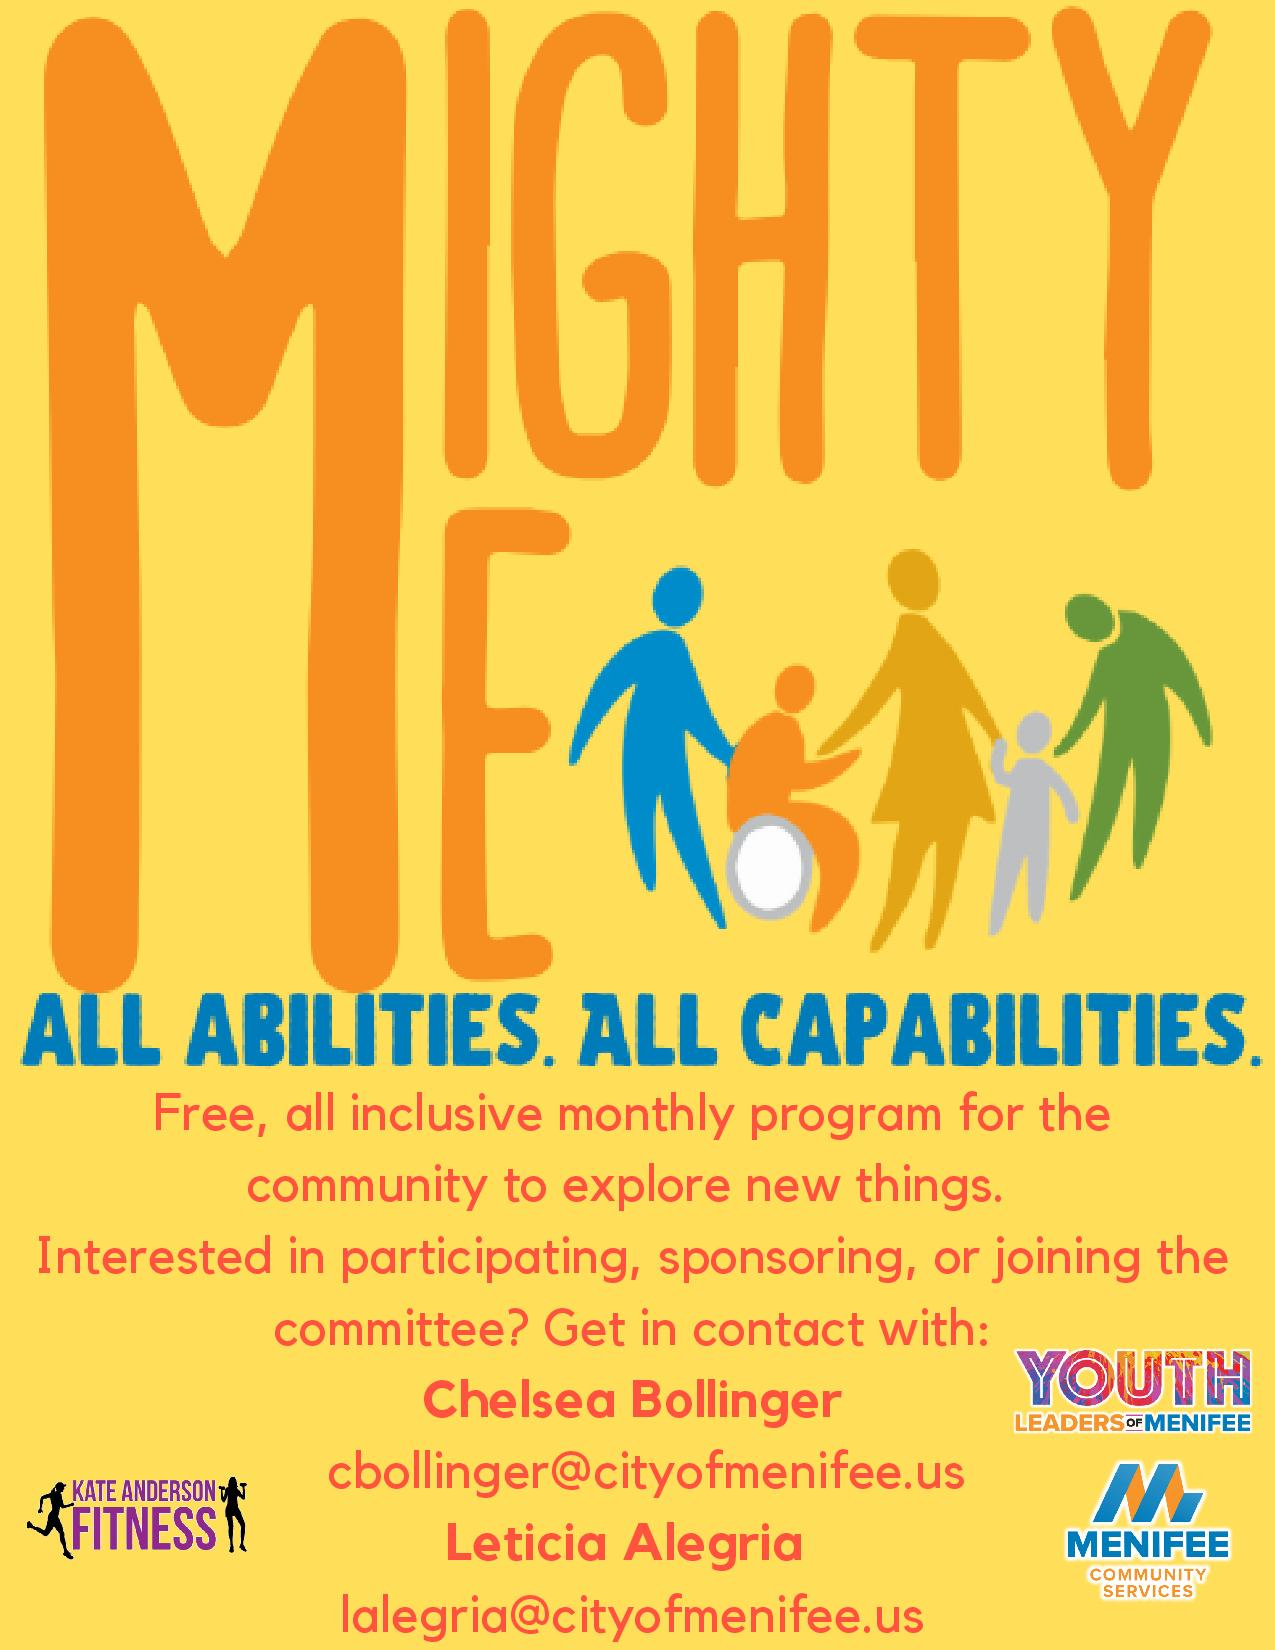 Mighty Me Program/Contact Information: Free, all inclusive monthly program for special needs!